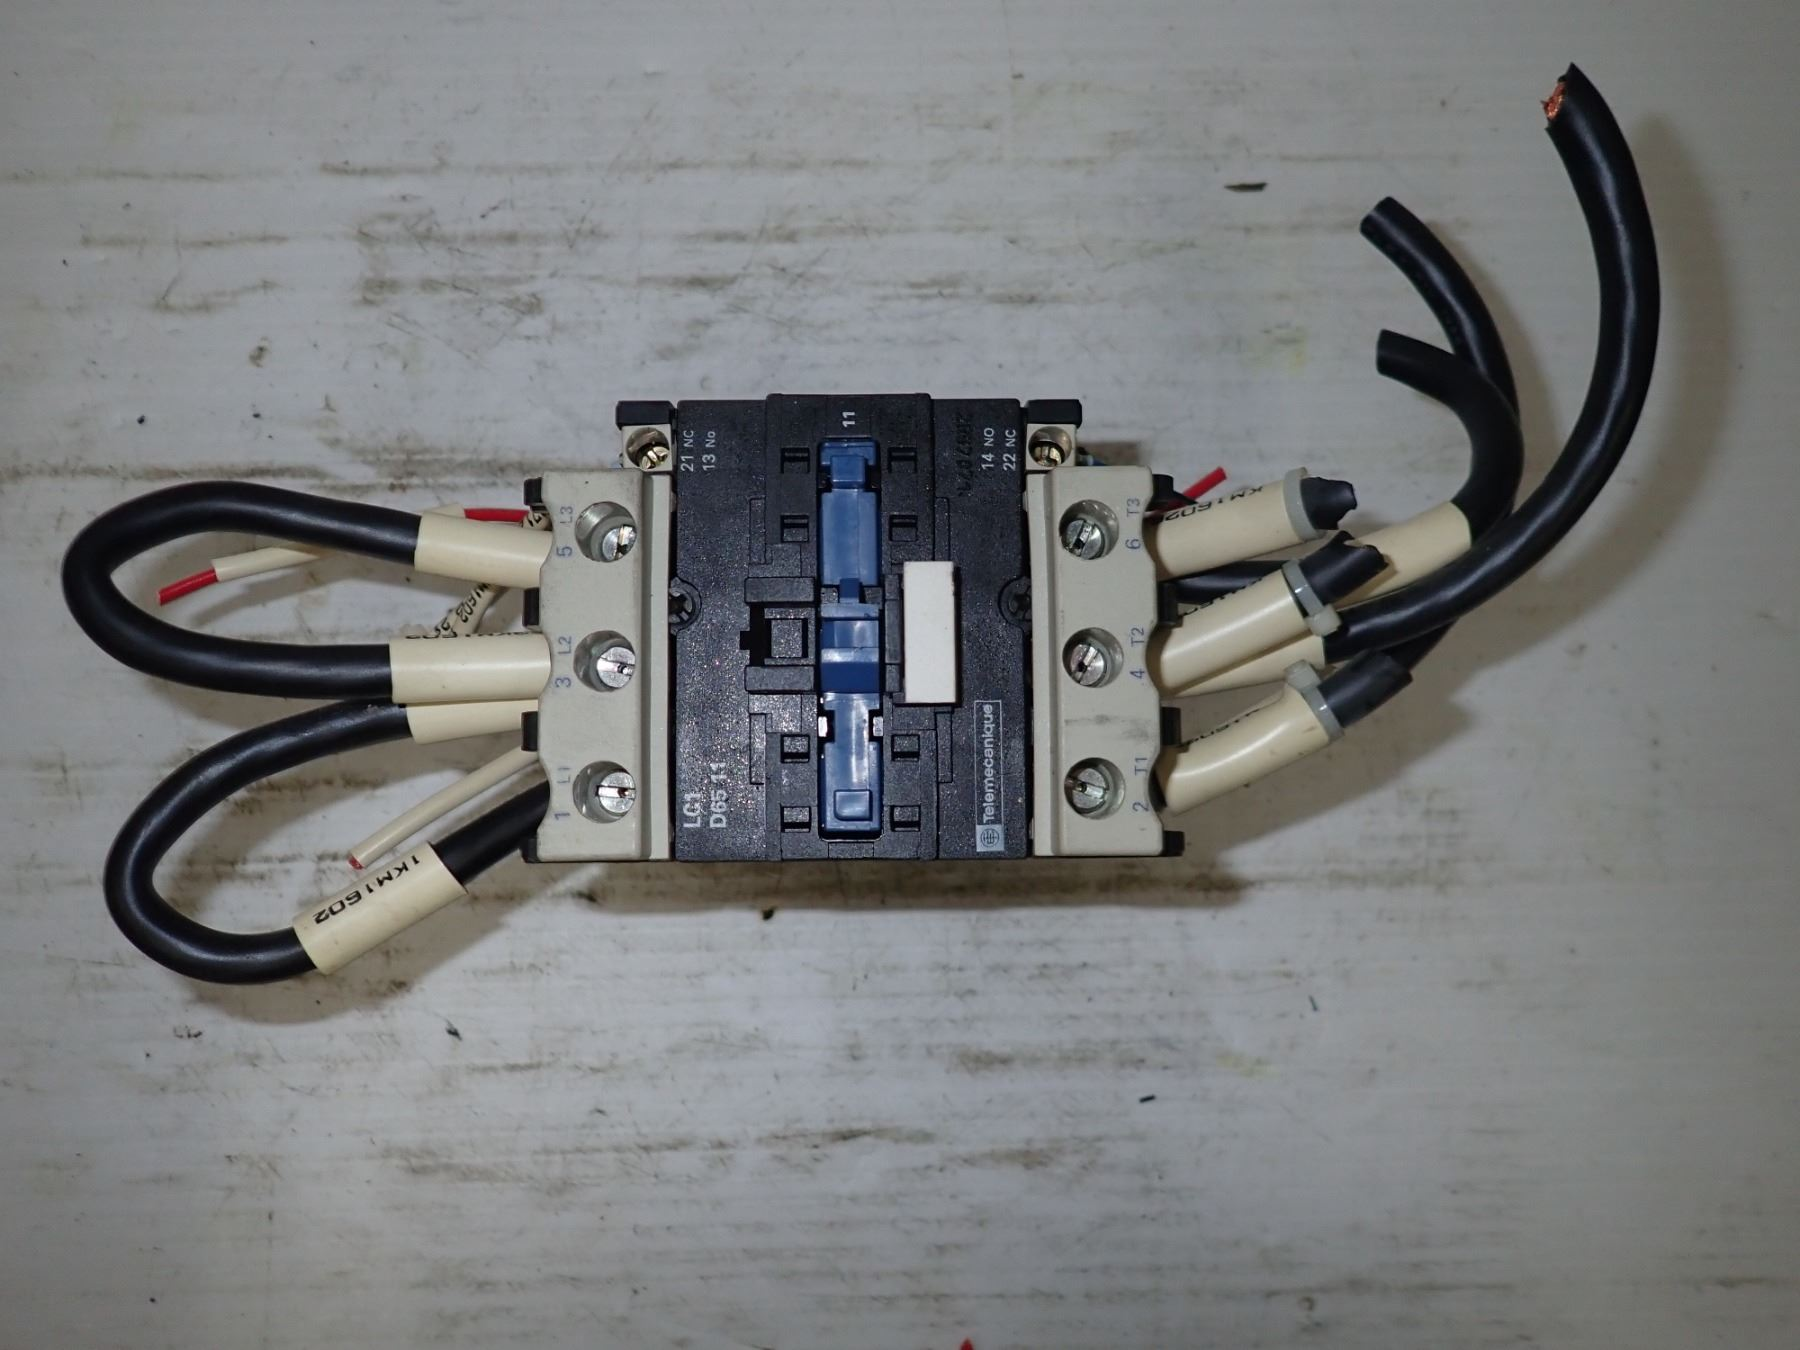 Telemecanique Lc1 D65 11 Contactor Wiring Image 8